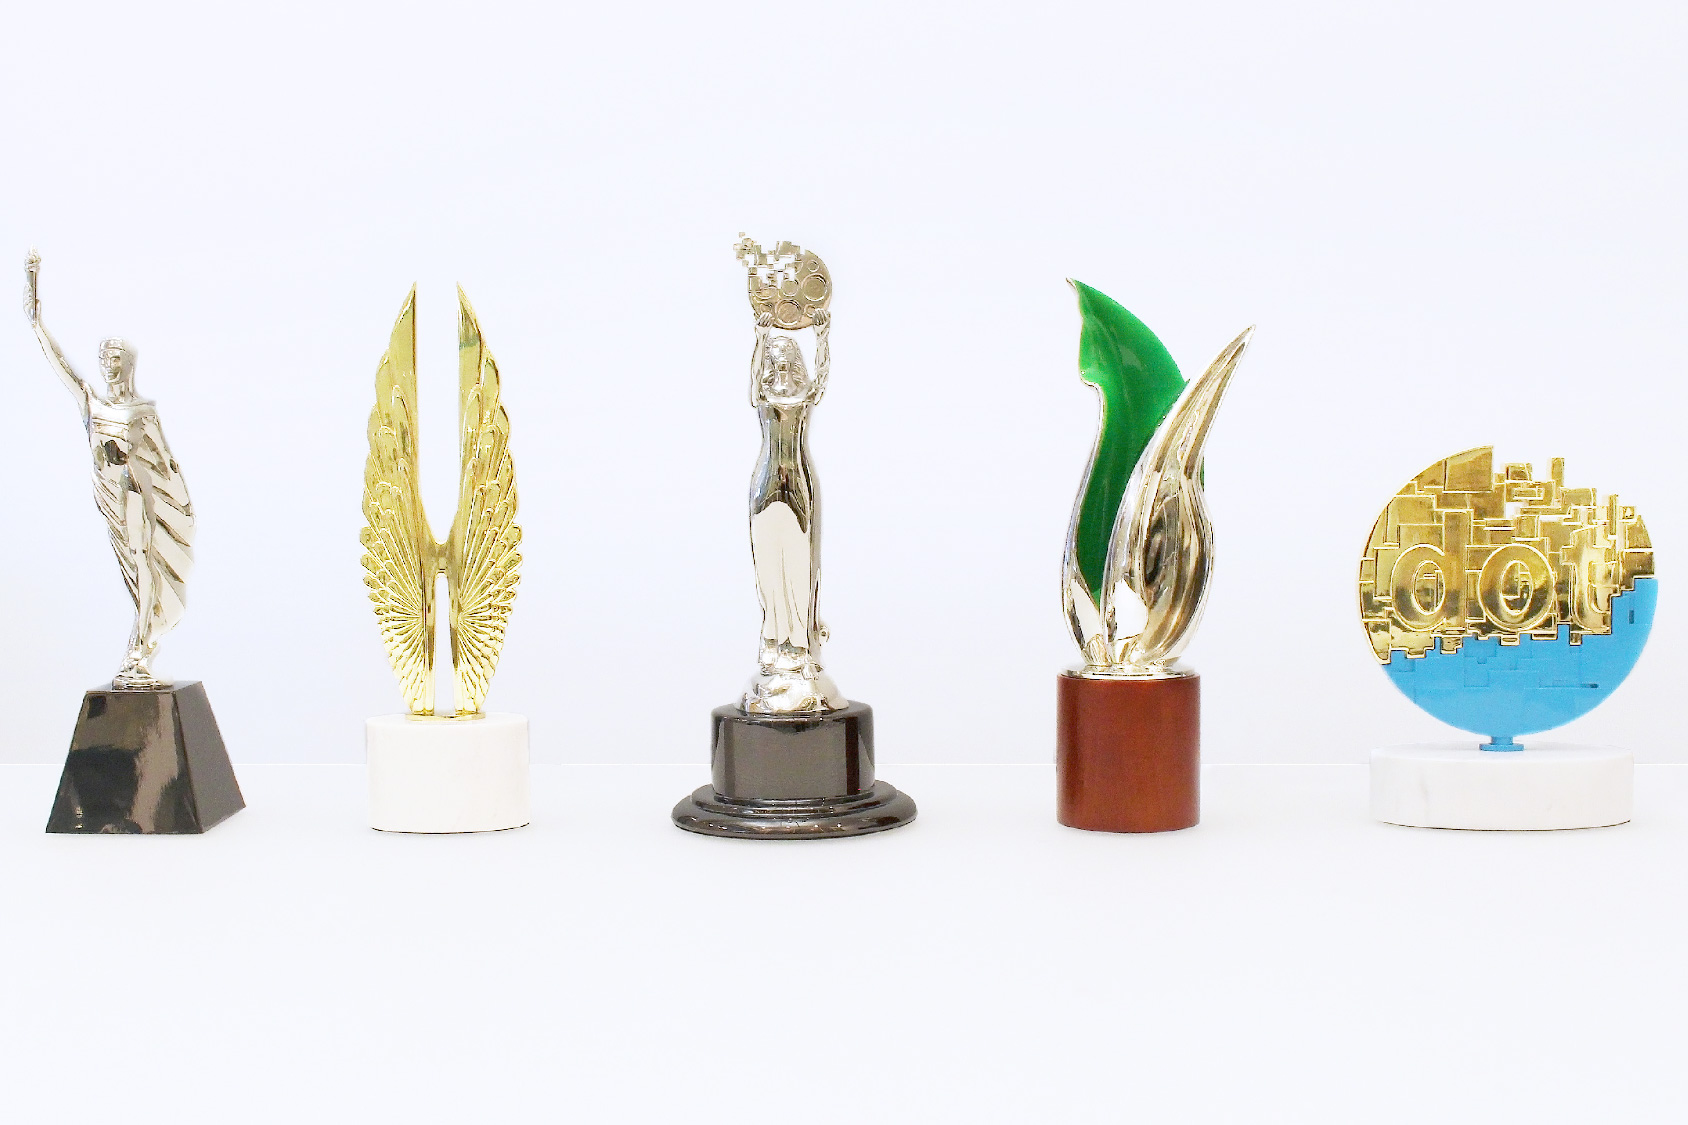 Five Custom Metal Trophies created by Society Awards for AMCP